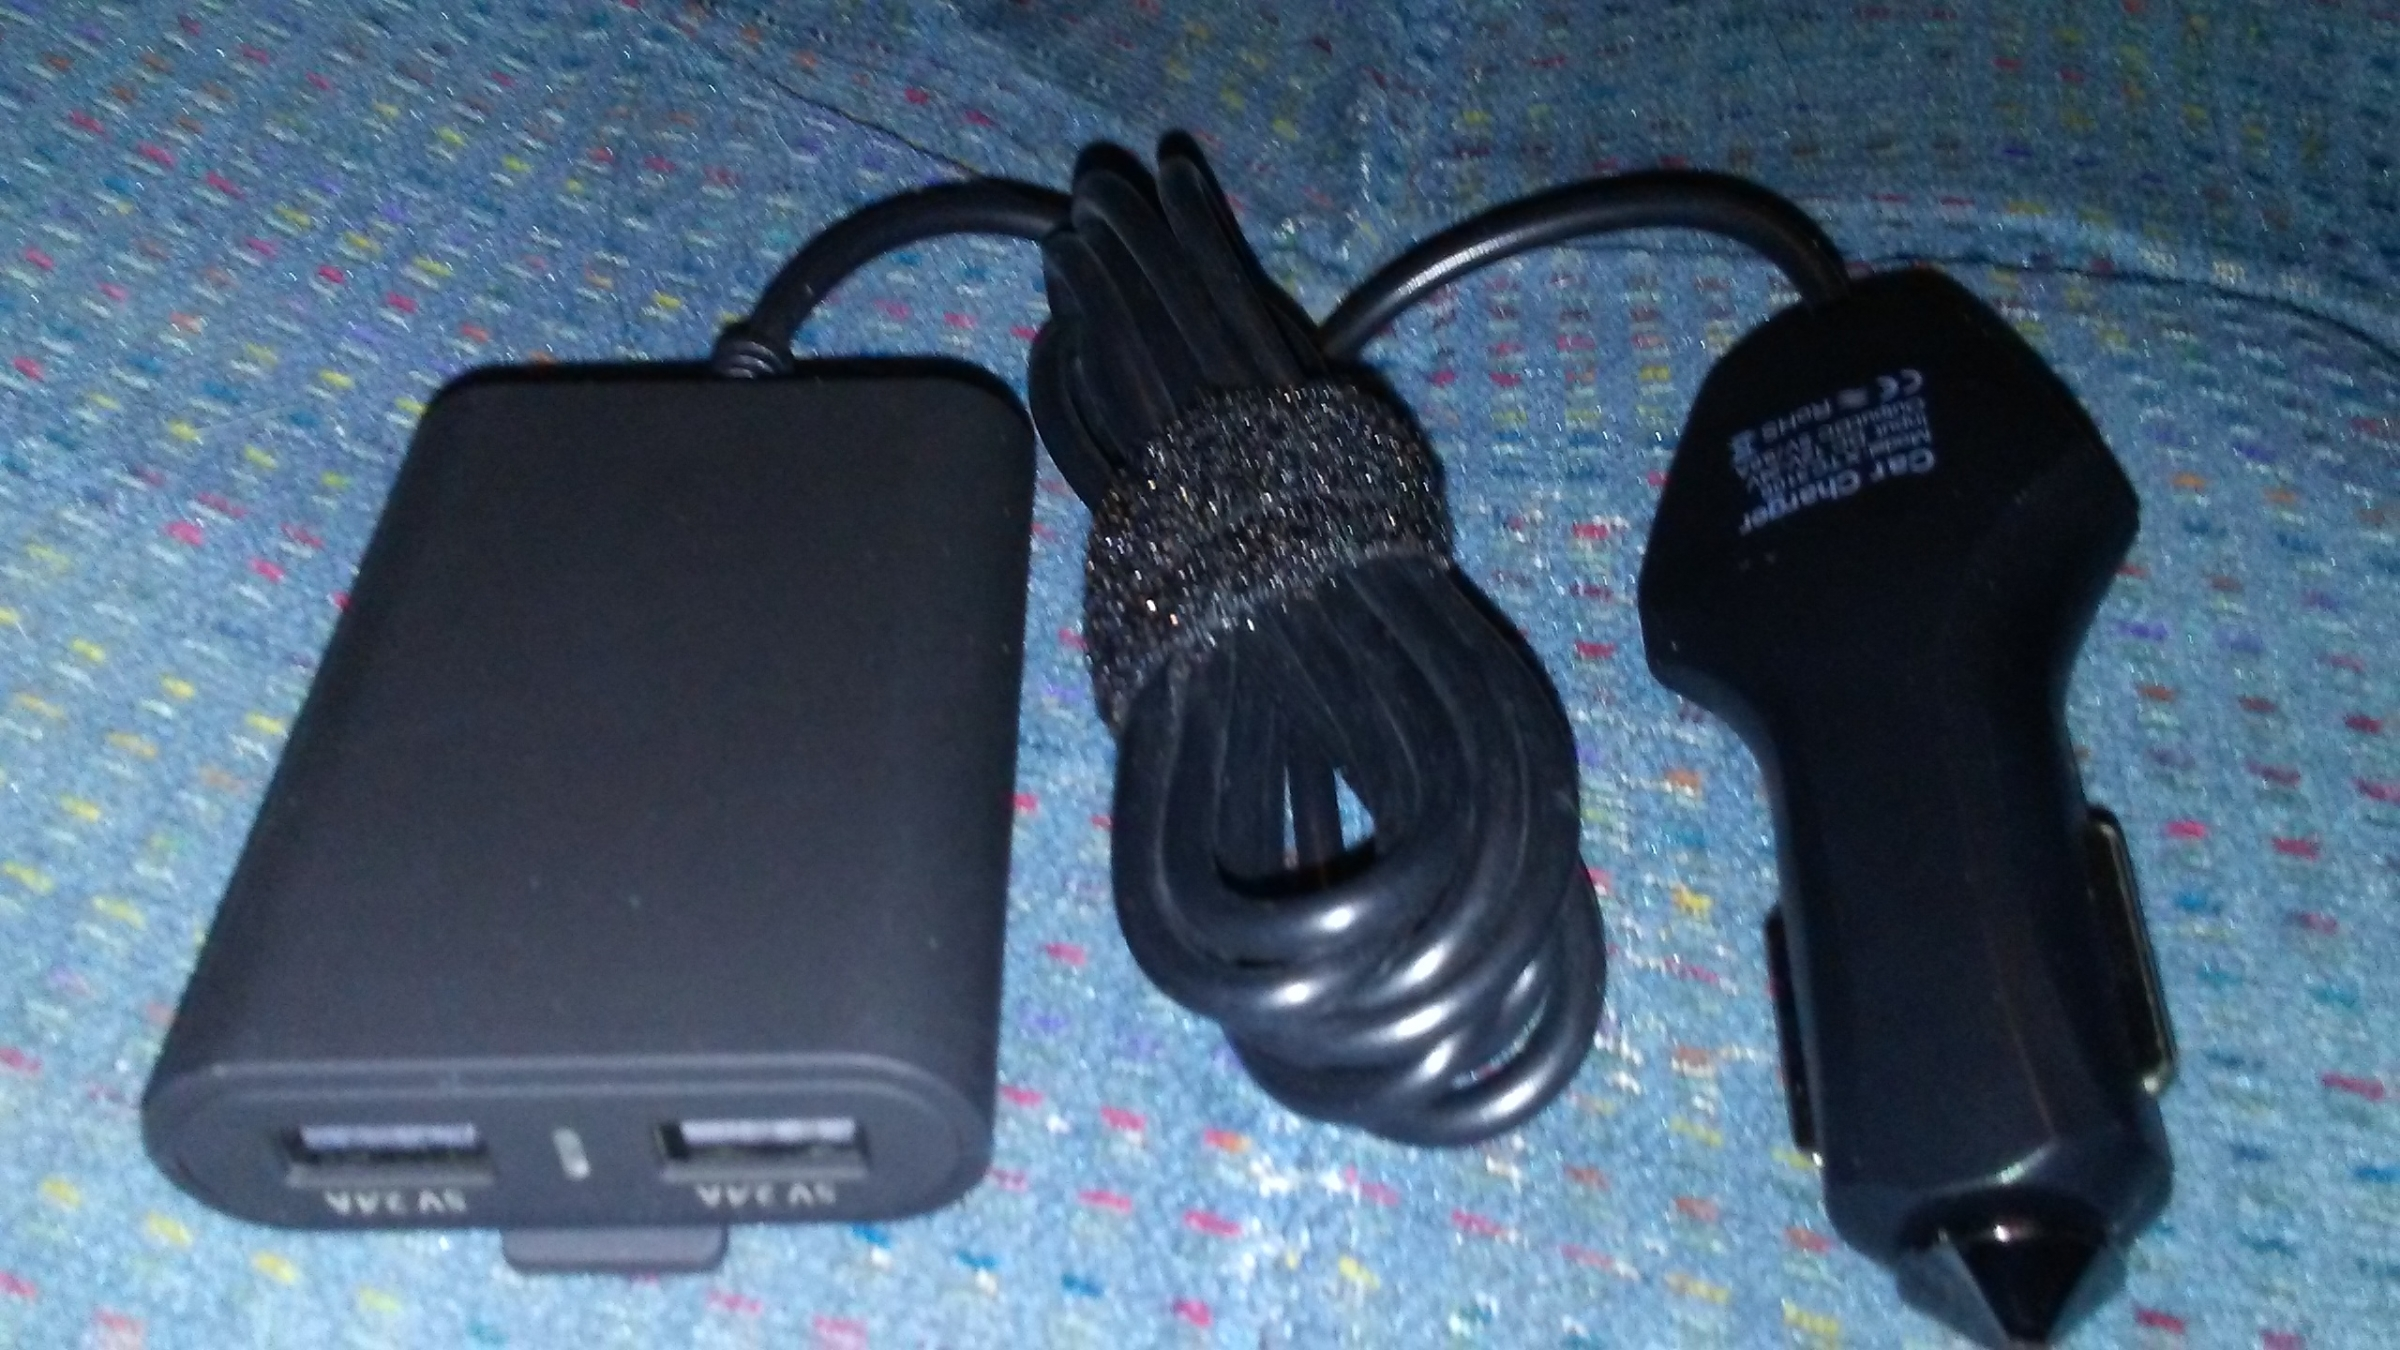 Nice Charger for Road Trips, Includes Front and Rear Seat Charging Ports